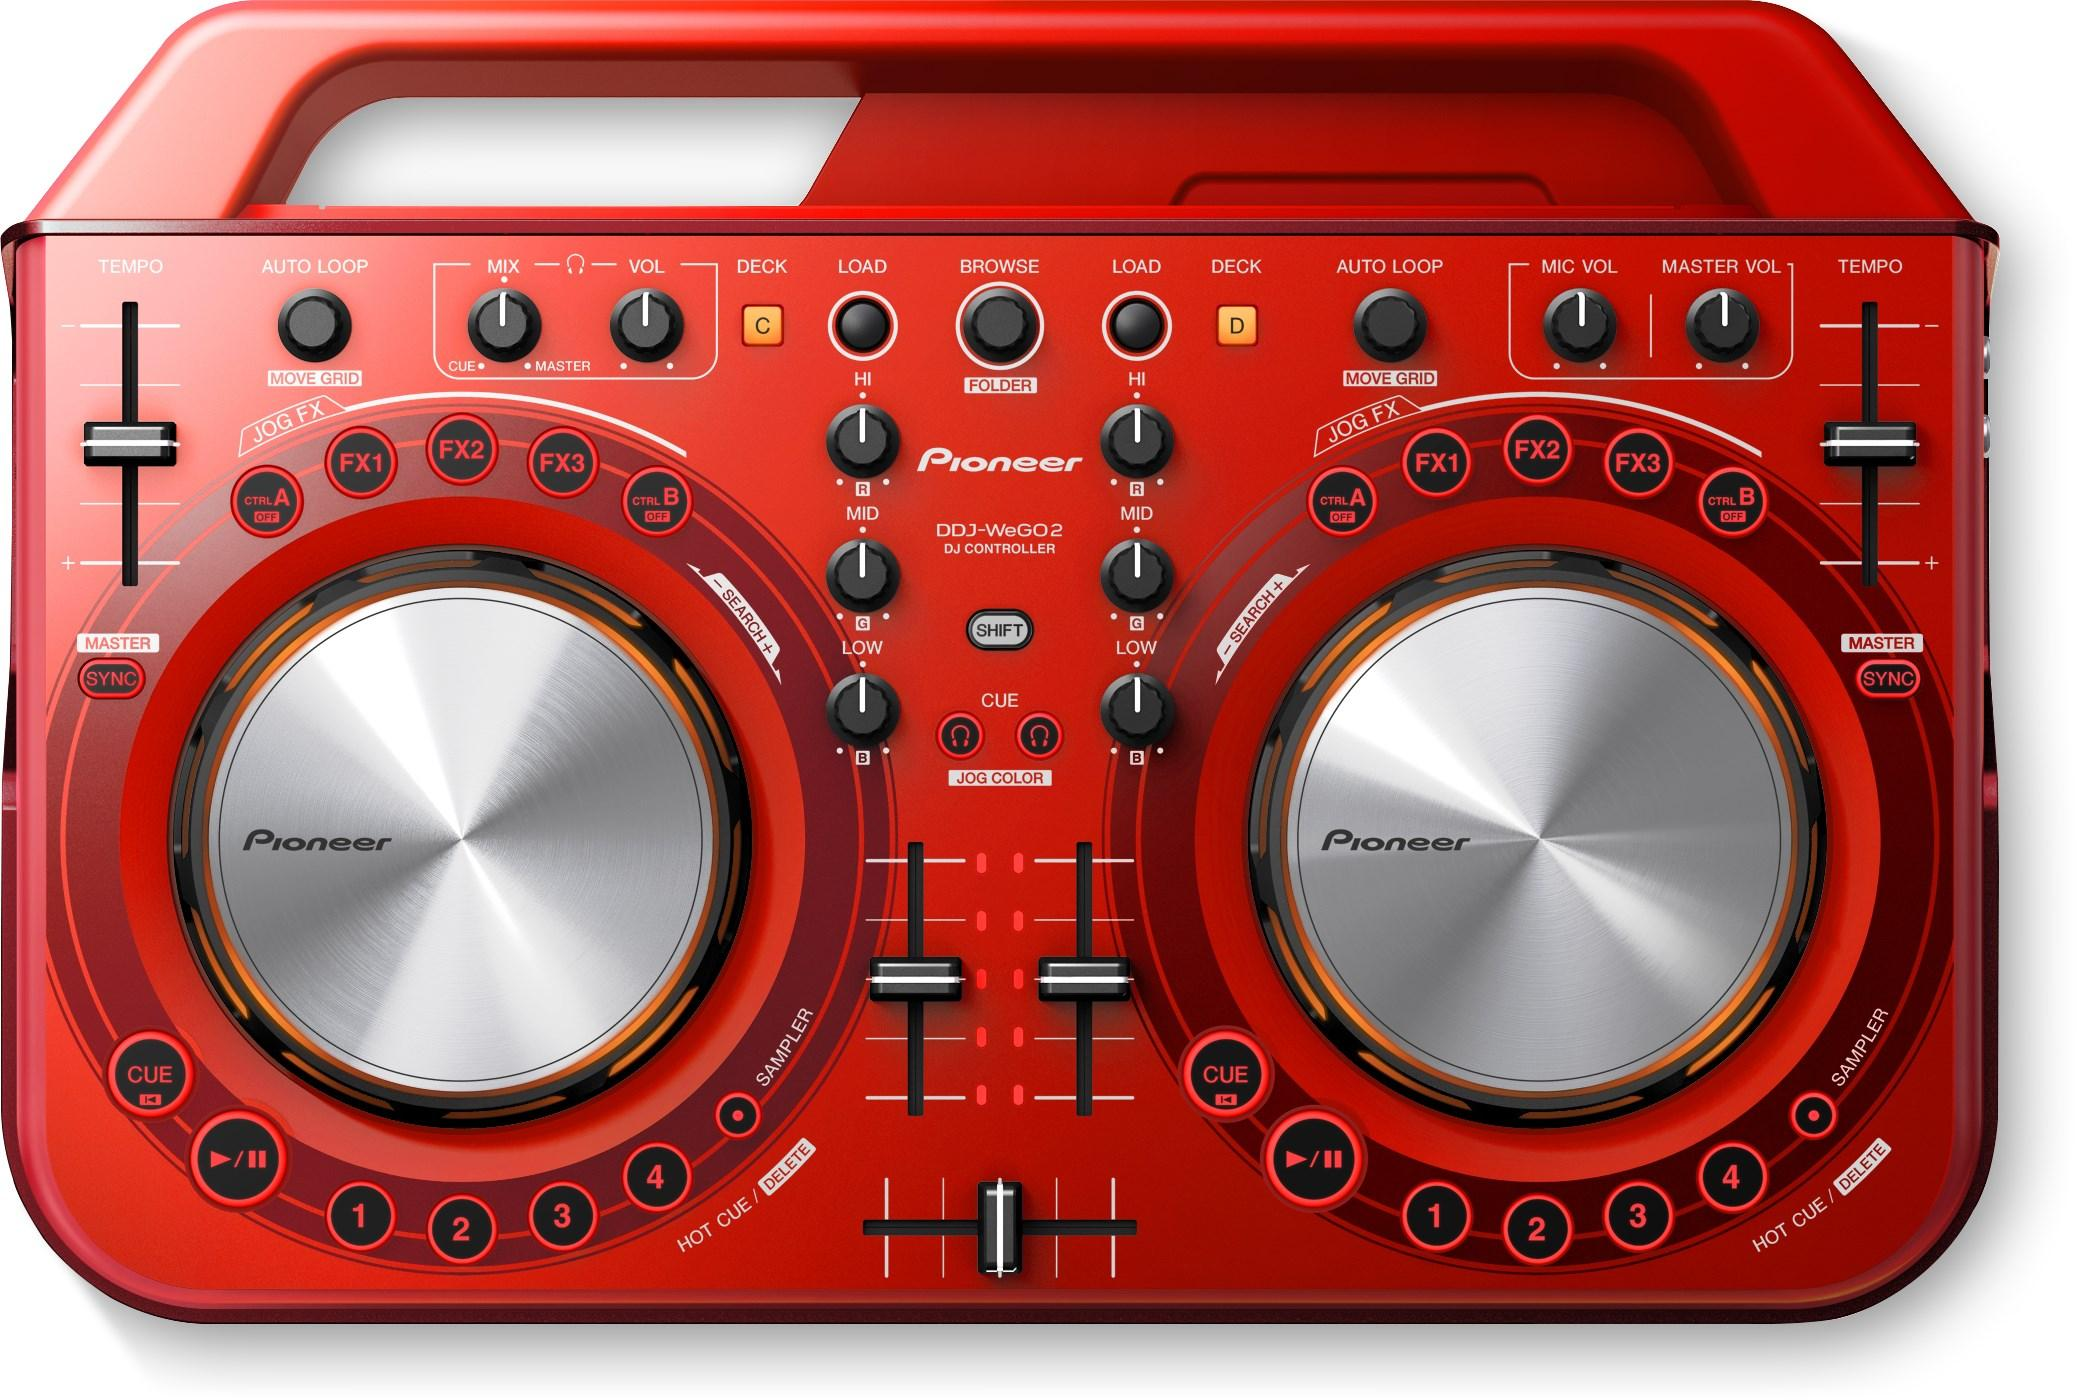 DJ Equipment for sale - DJ Devices best seller, prices & brands in